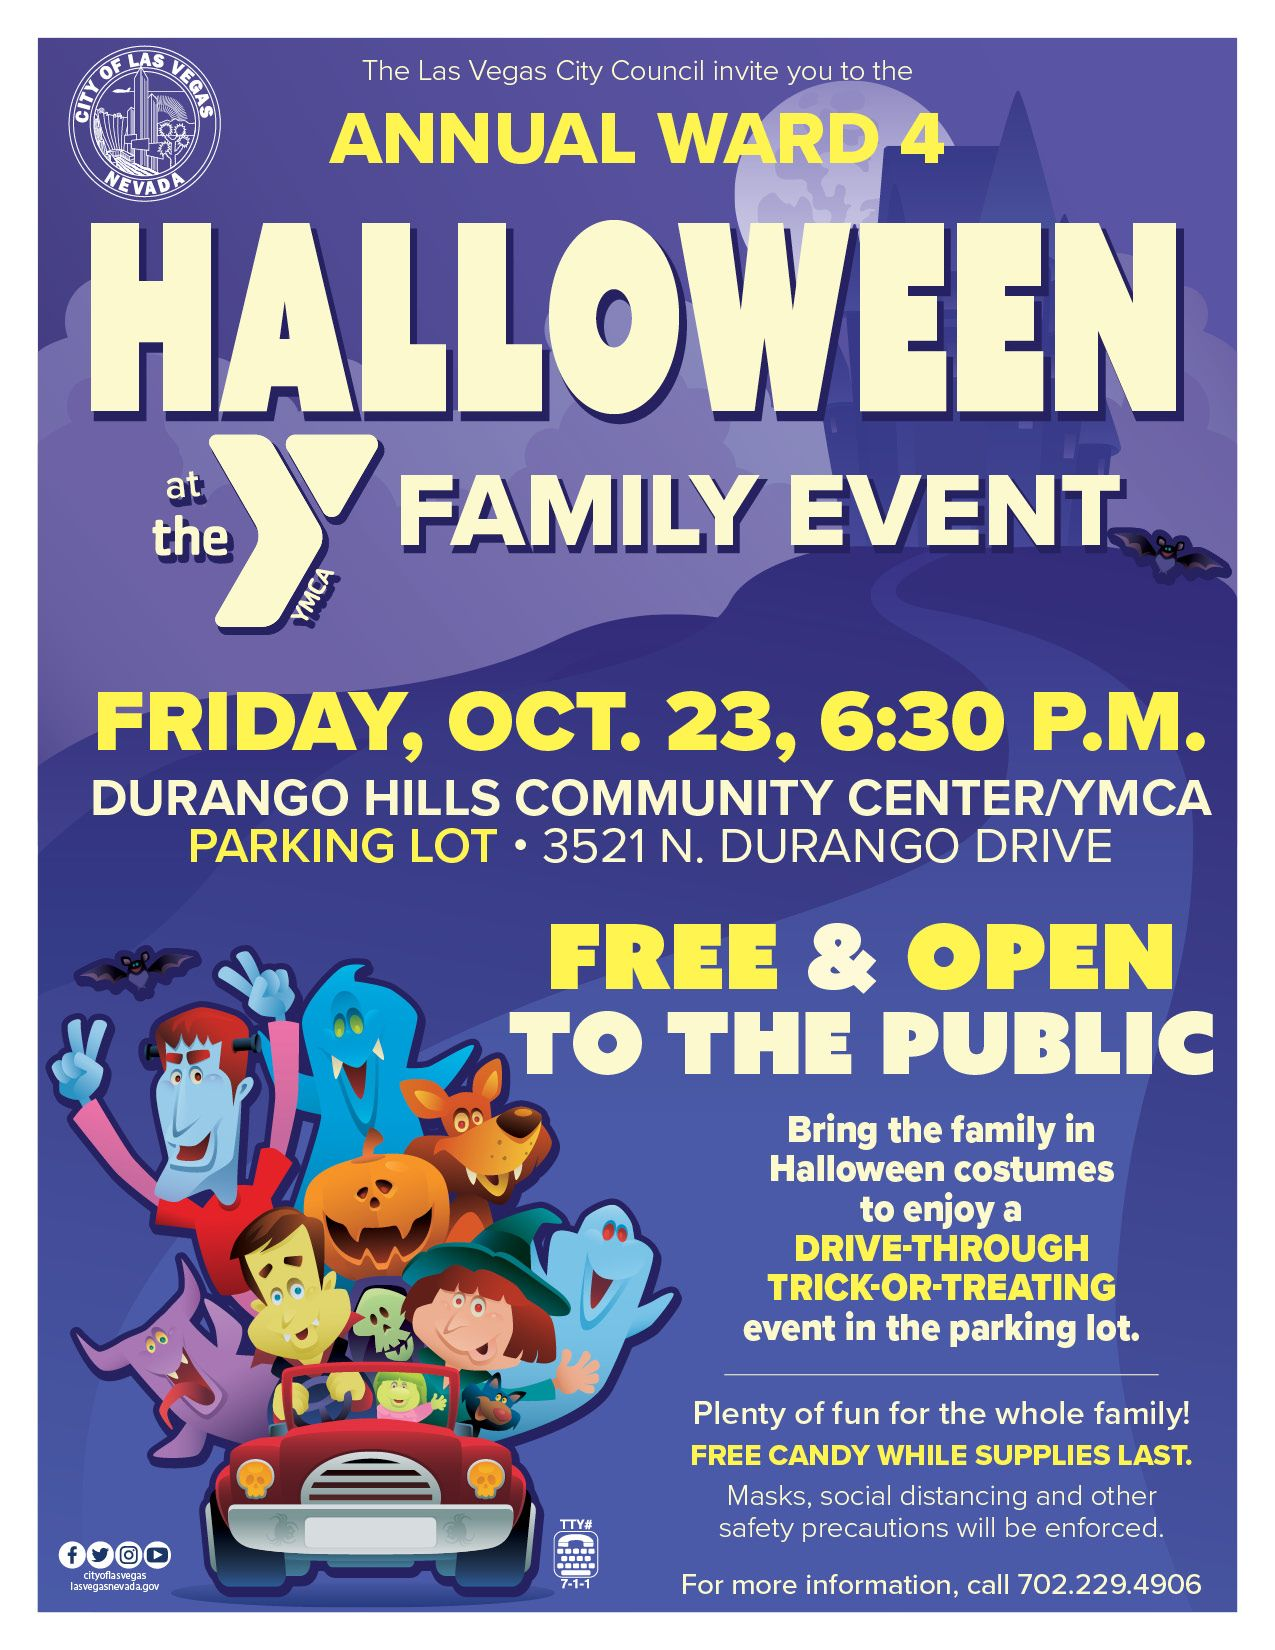 Halloween at the Y Trunk-or-Treat